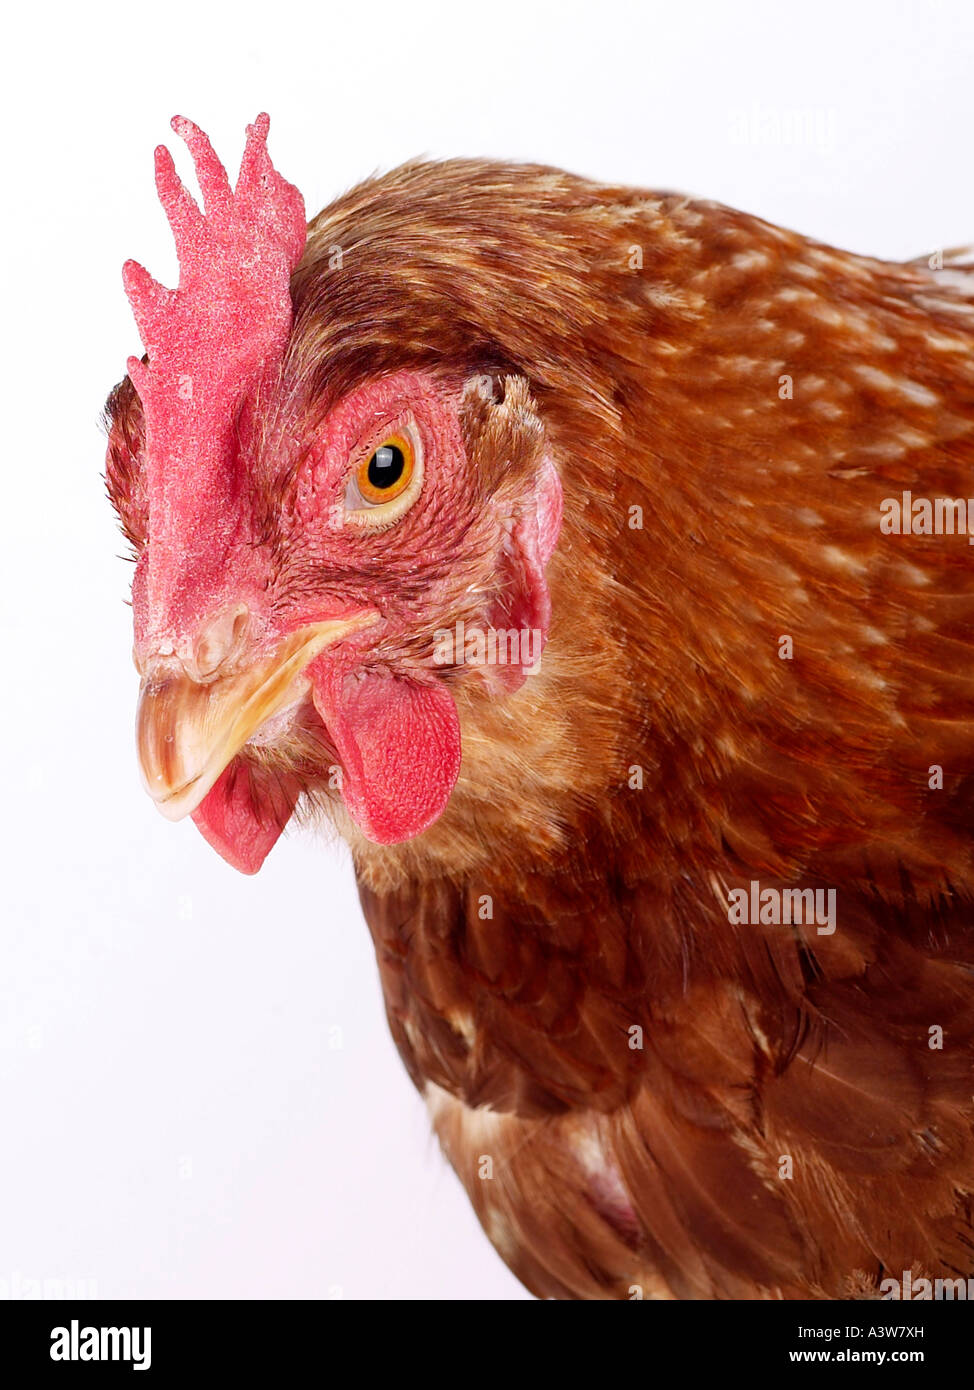 The head of a chicken, looking downwards. - Stock Image